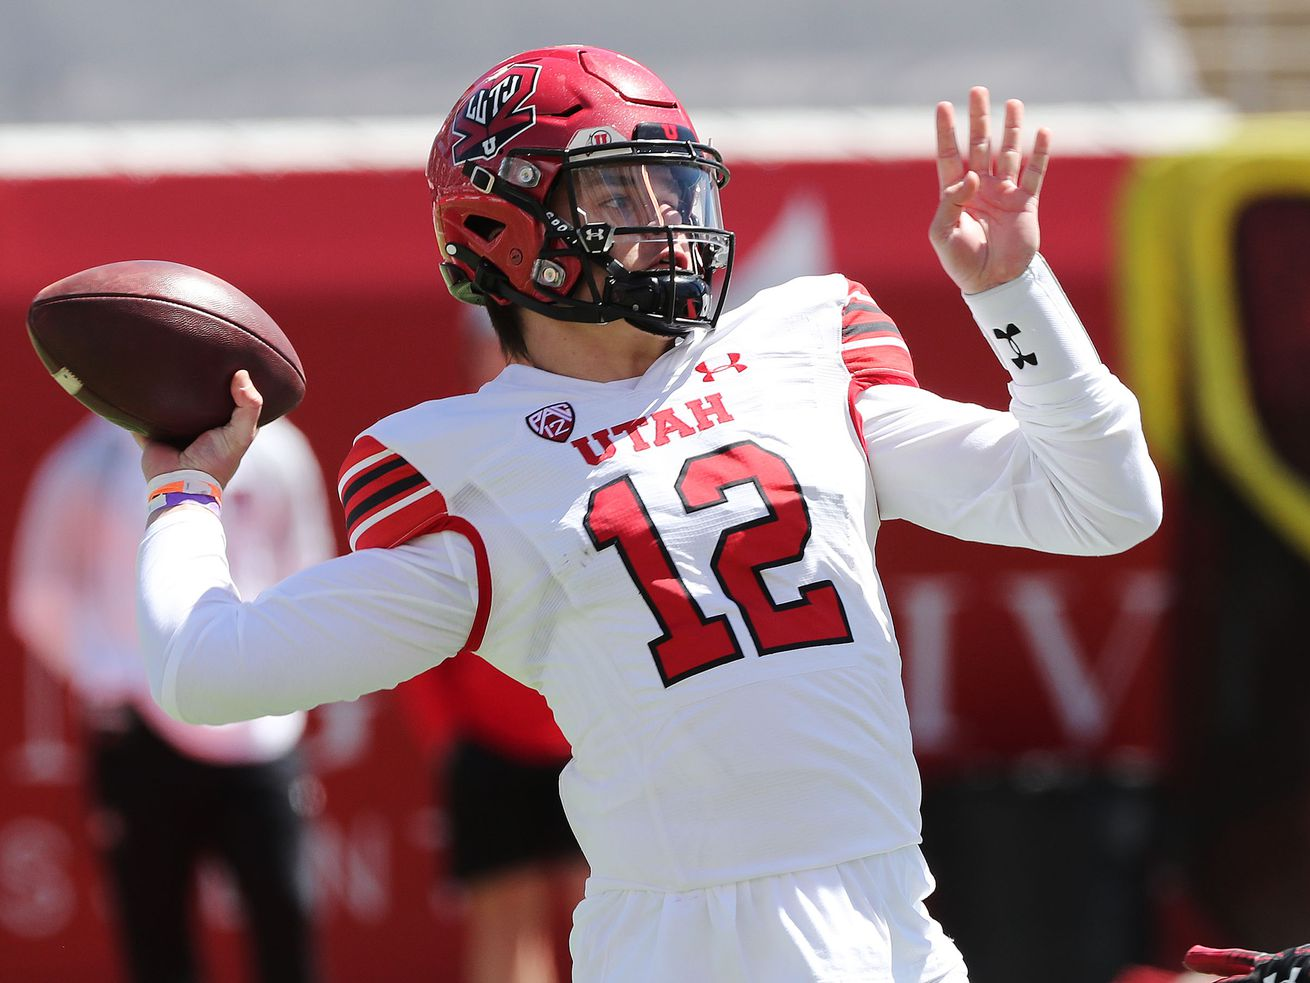 Utah Utes quarterback Charlie Brewer (12) throws during the Red and White game in Salt Lake City on Saturday, April 17, 2021.